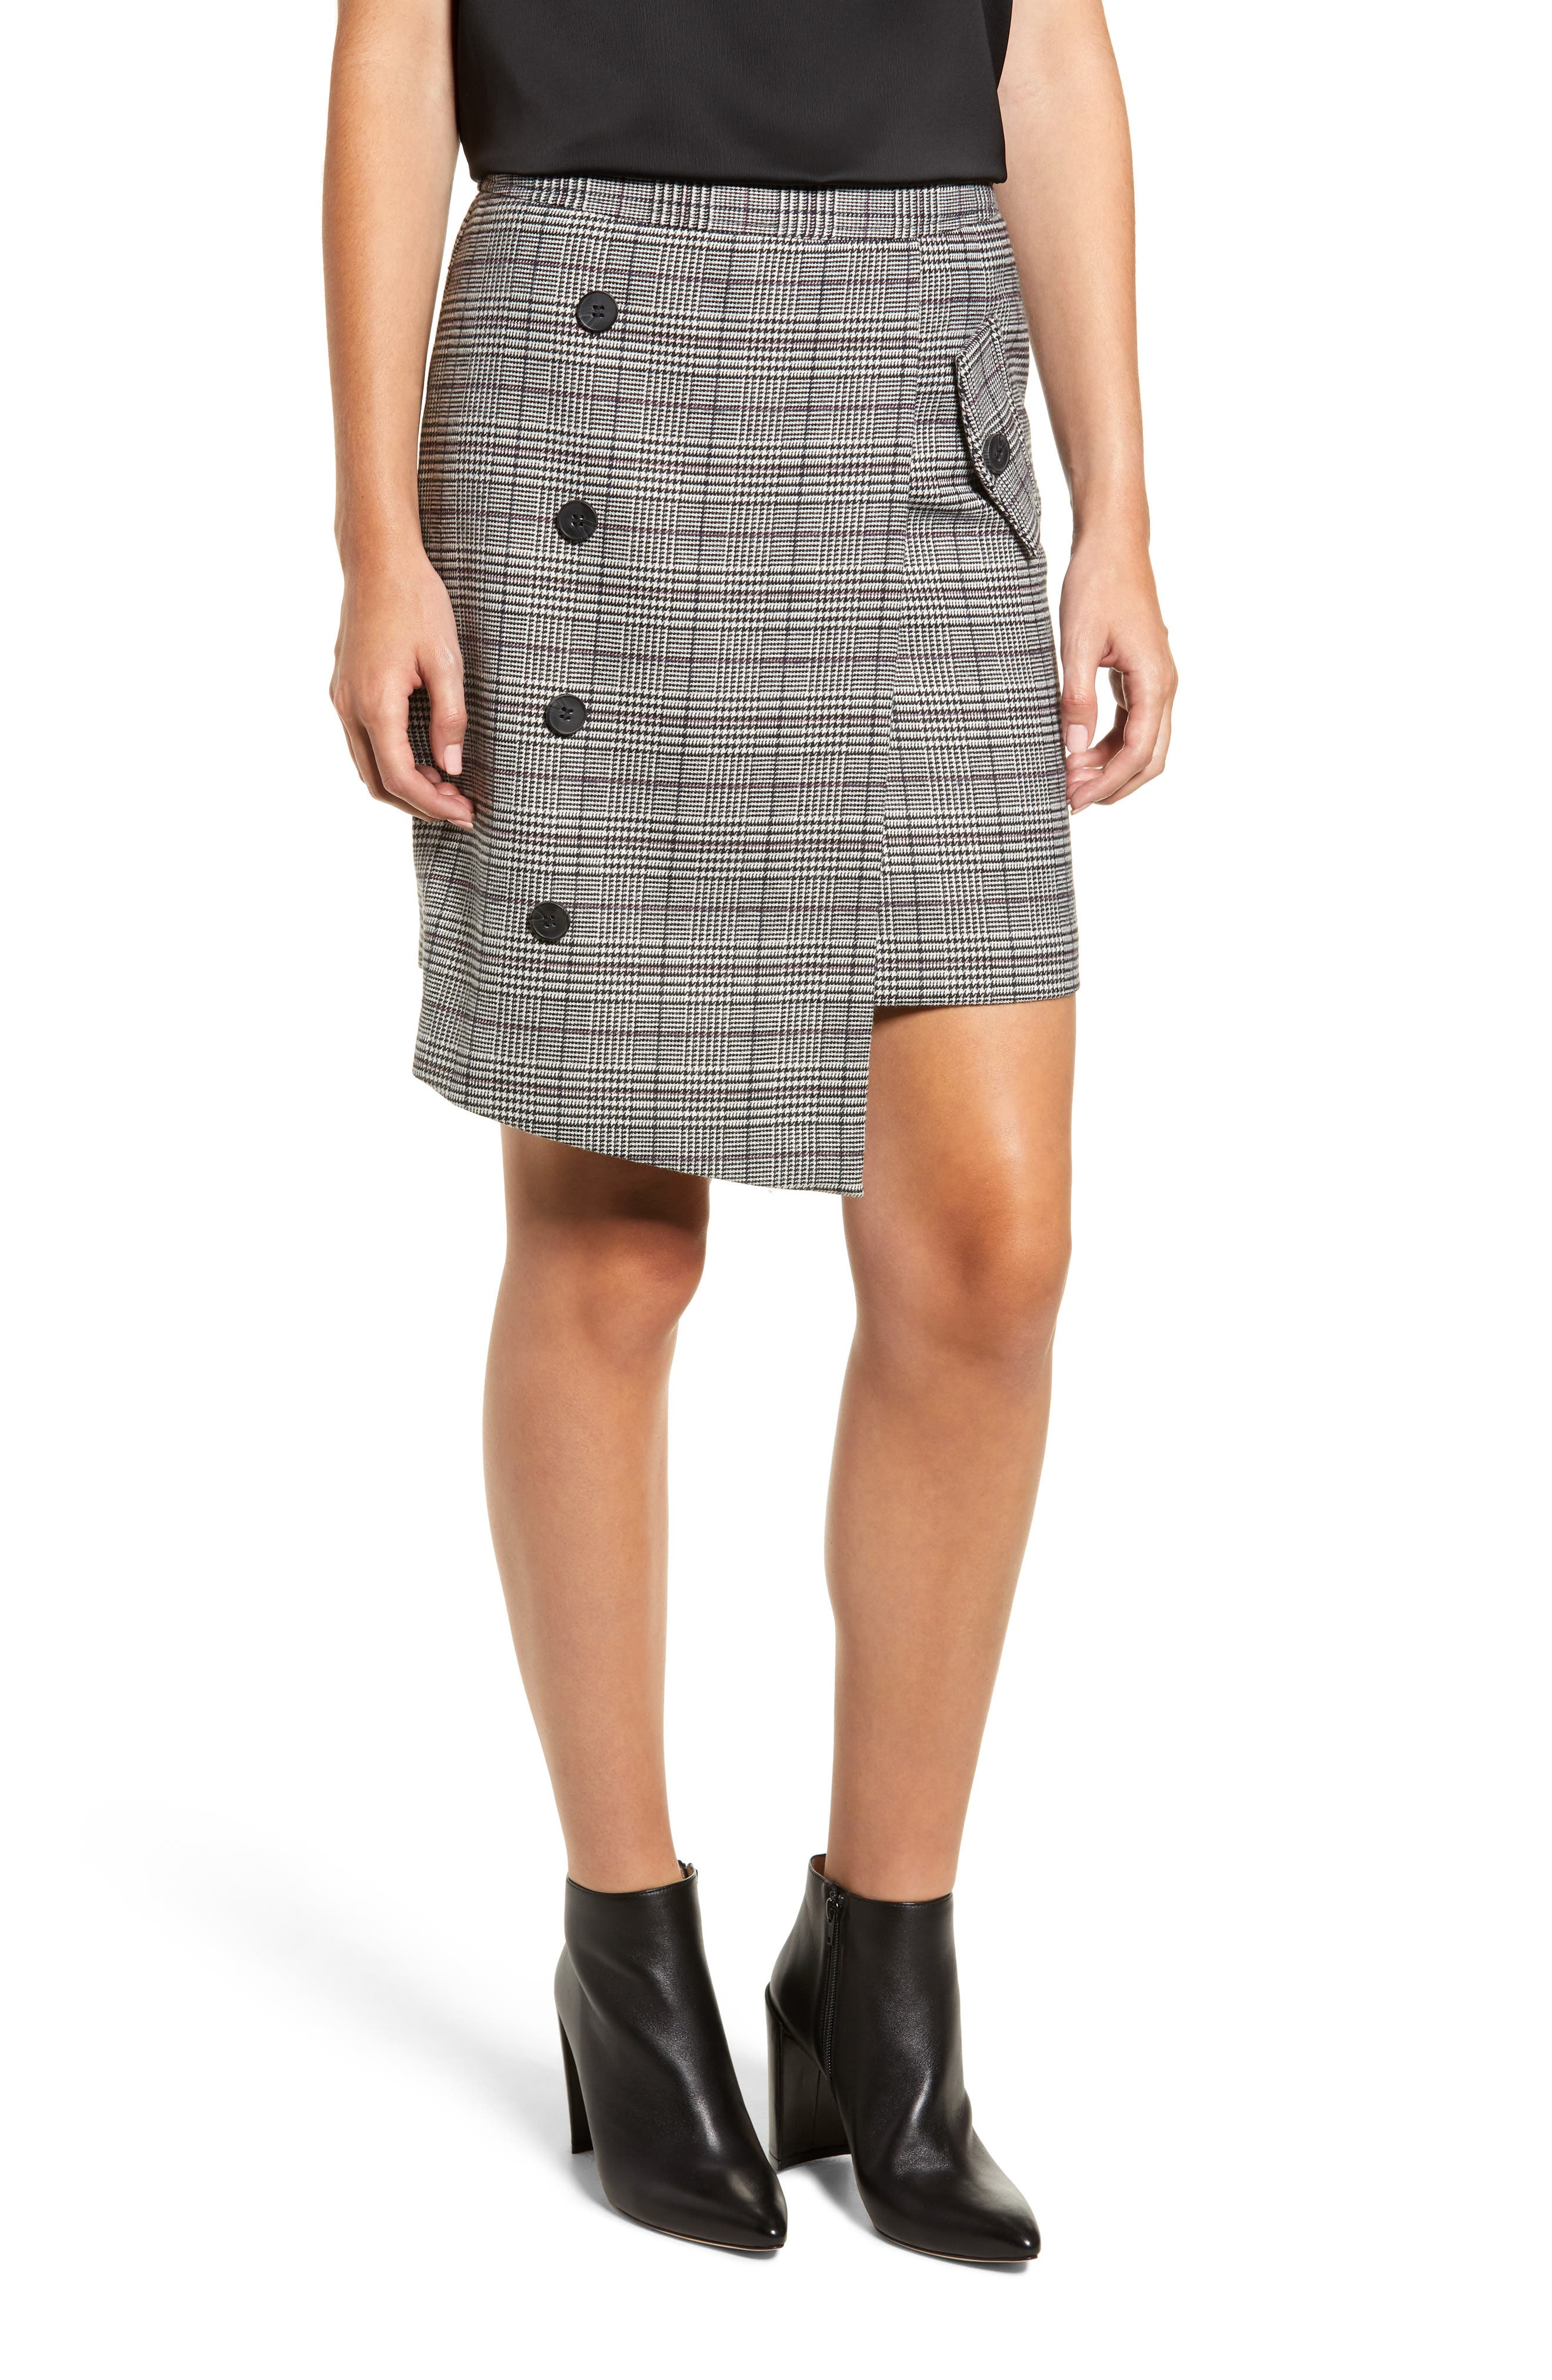 Chriselle Lim Bianca Houndstooth Button Front Skirt, Grey